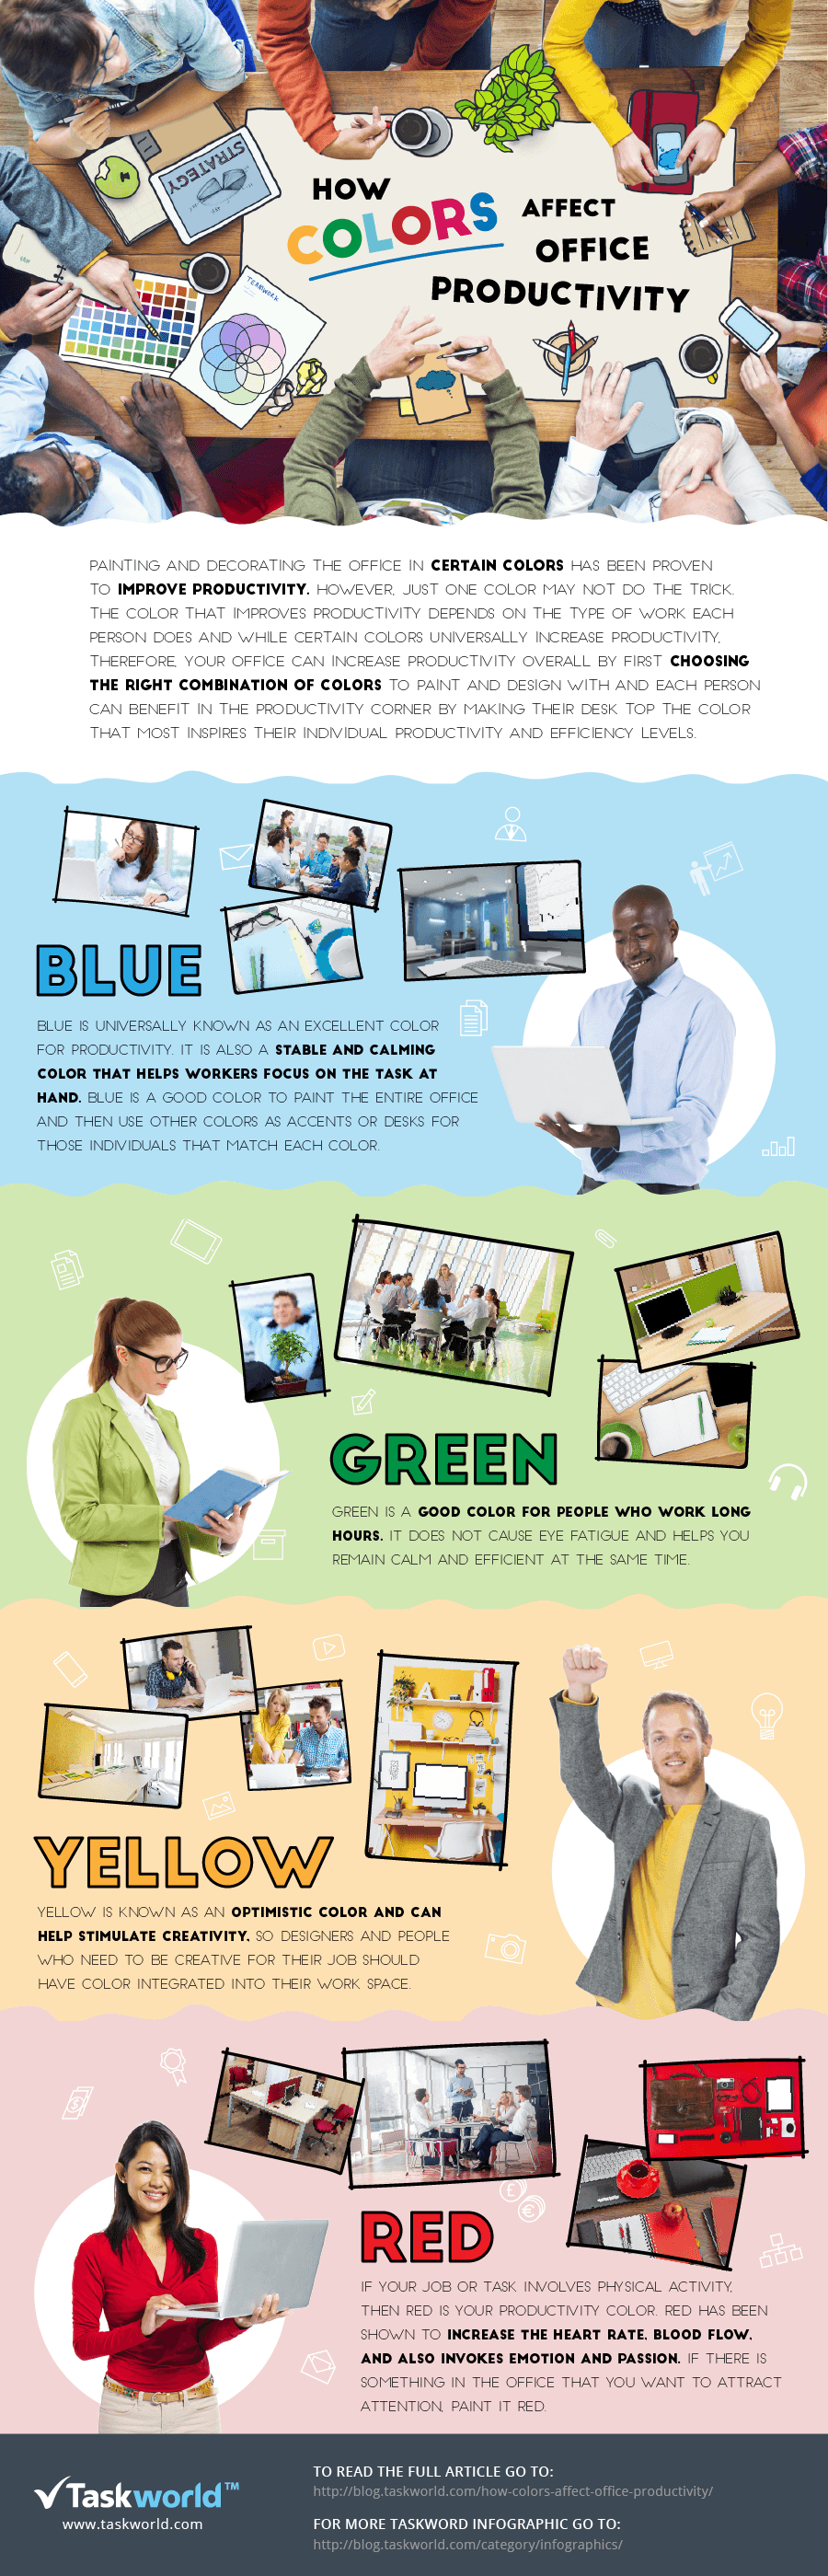 How-Colors-Affect-Office-Productivity-infographic-plaza